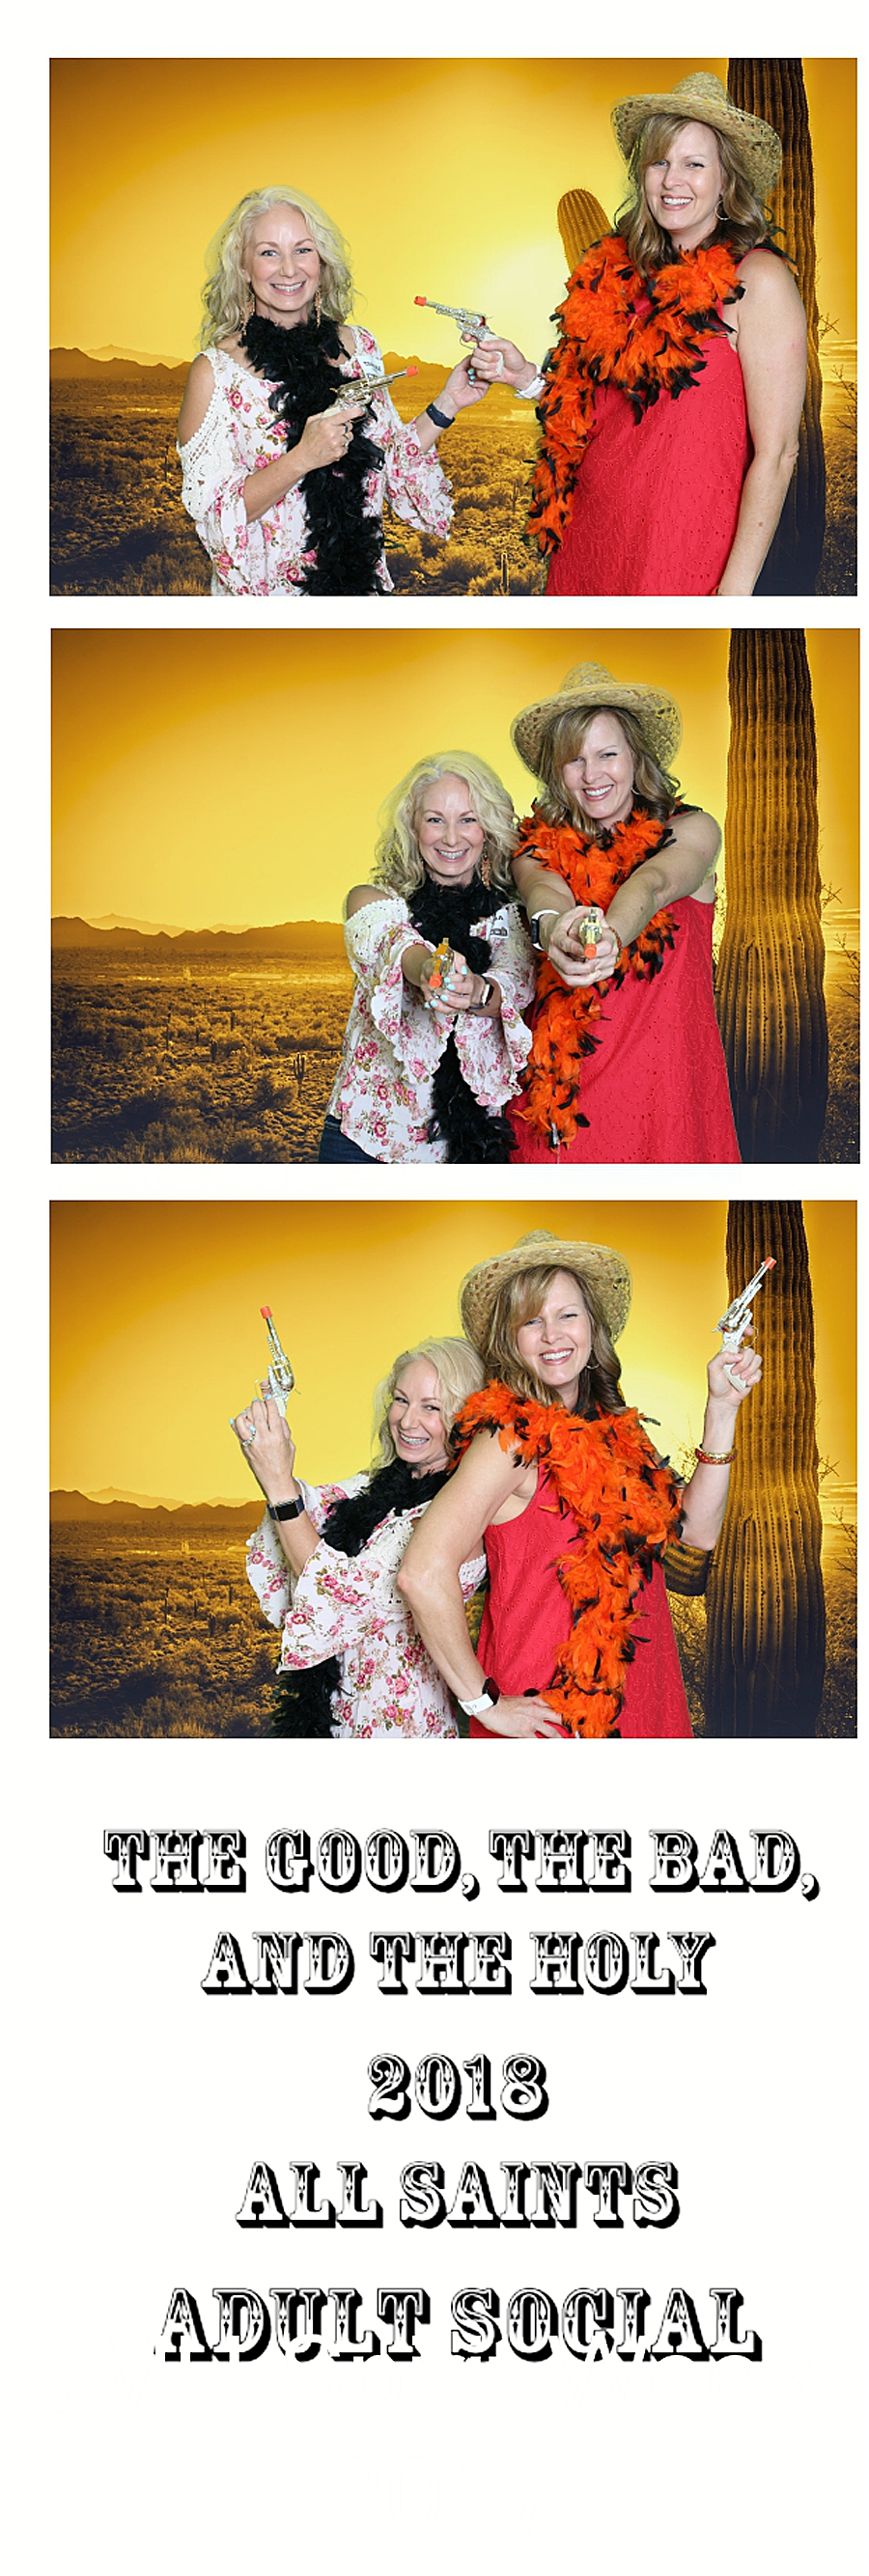 Knoxville Photo Booth_1312.jpg